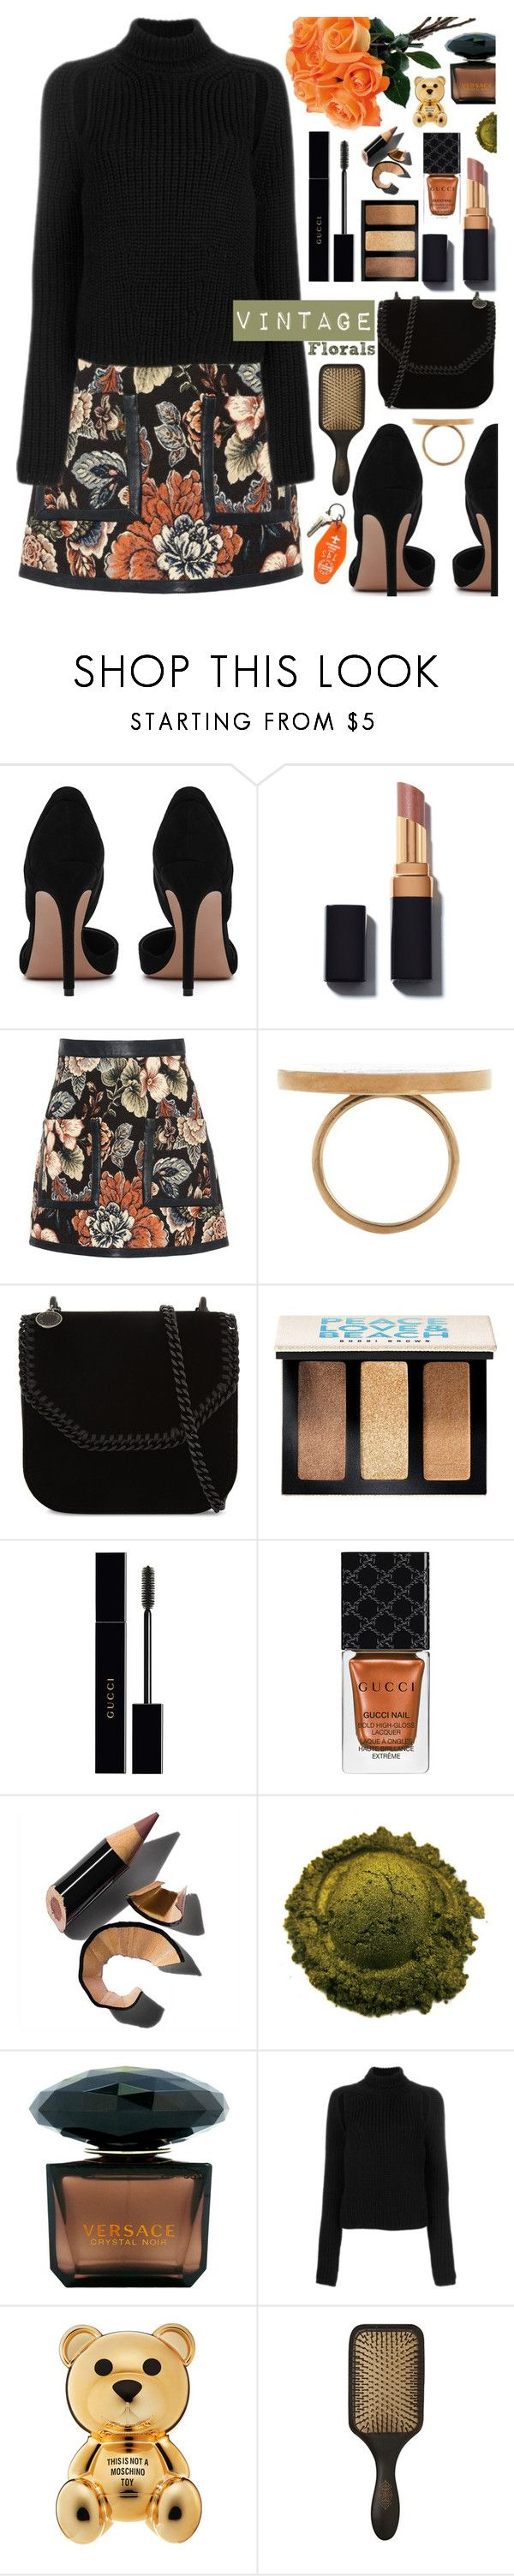 """""""Smell the Roses: Vintage Florals"""" by tinkabella222 ❤ liked on Polyvore featuring STELLA McCARTNEY, Bobbi Brown Cosmetics, Gucci, Versace, Calvin Klein 205W39NYC, Three Potato Four, vintage, StellaMcCartney, CalvinKlein and vintageflorals"""